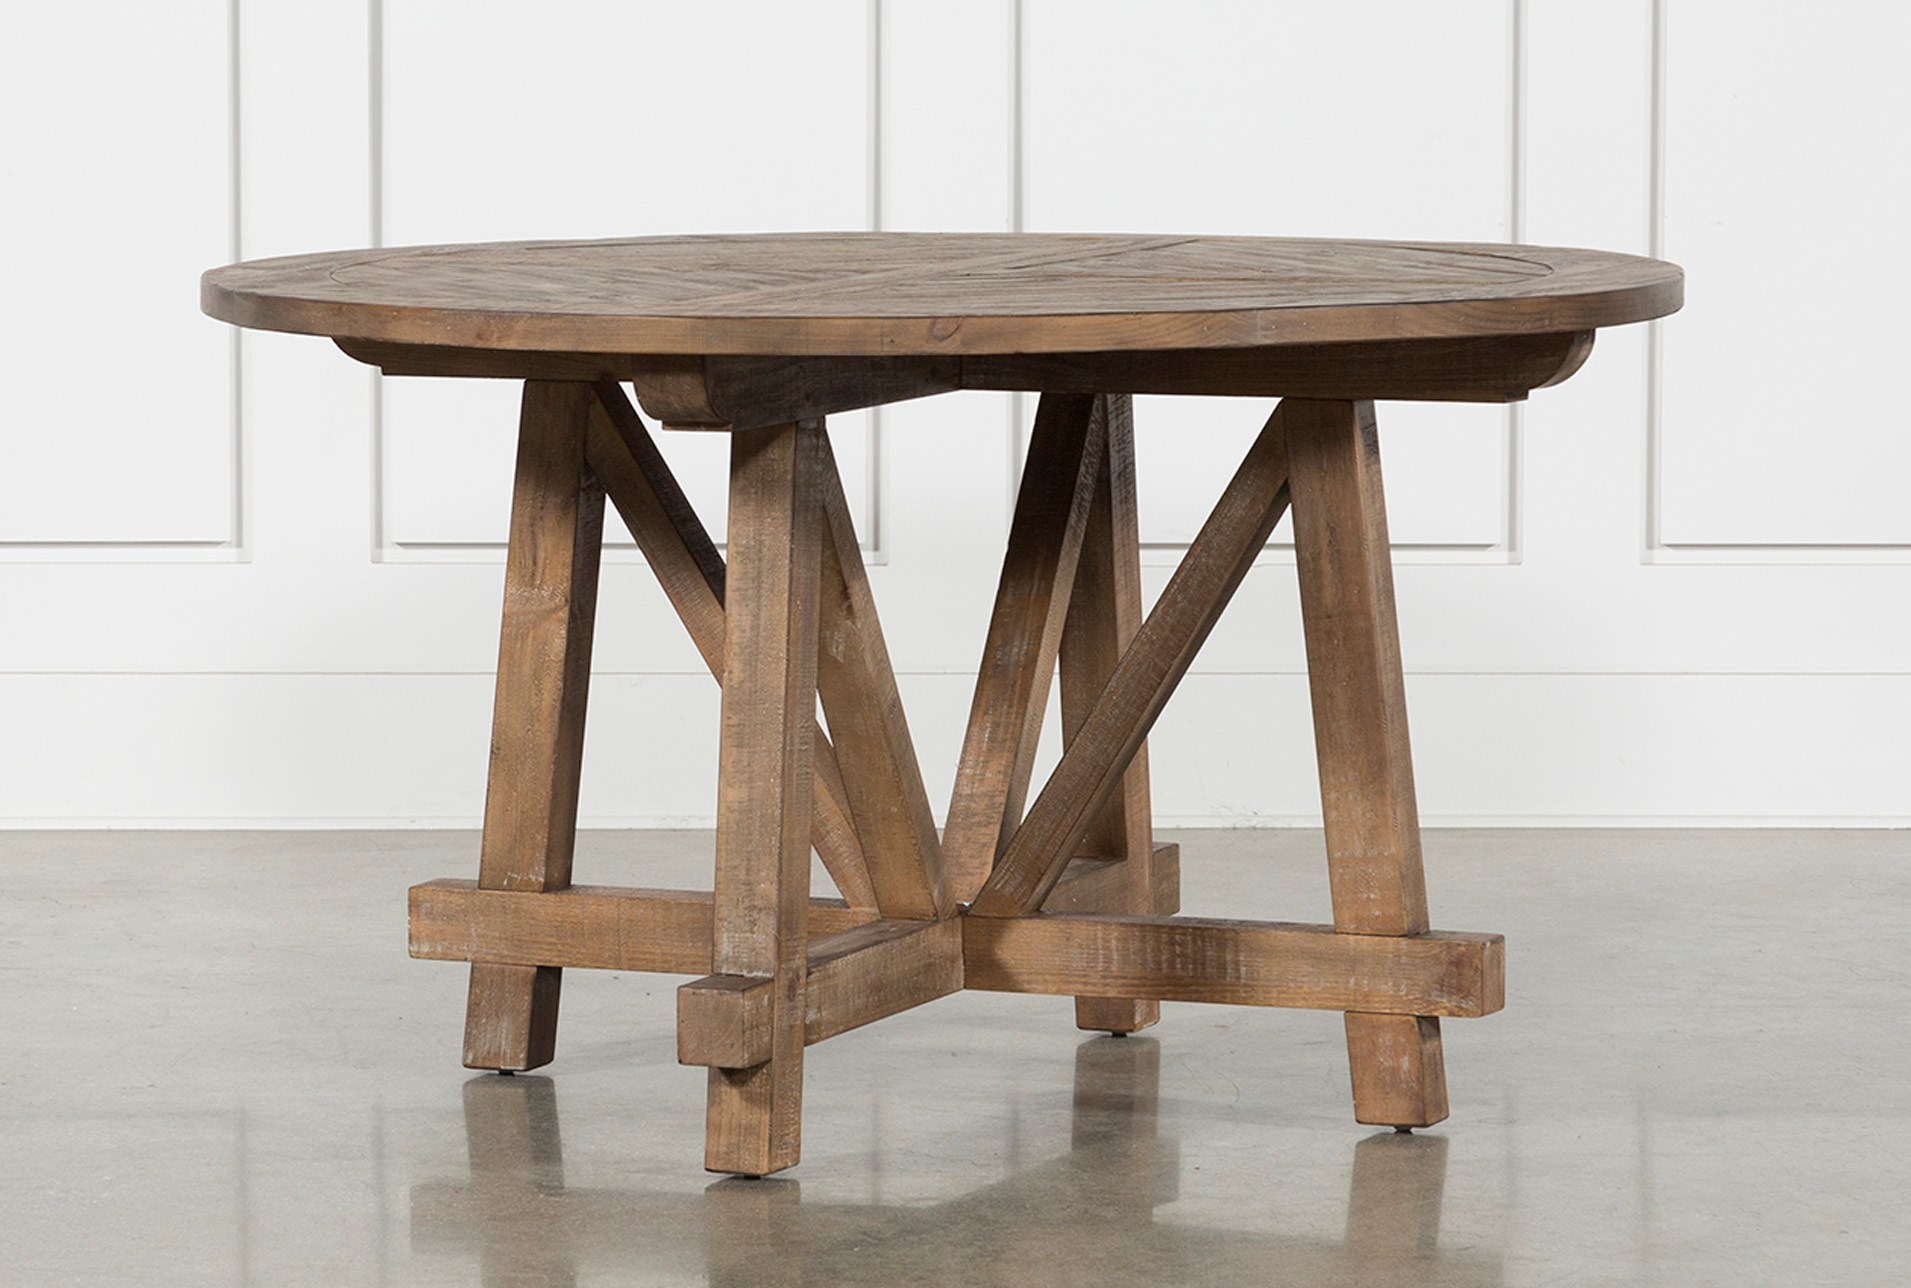 Craftsman Round Dining Table Qty 1 Has Been Successfully Added To Your Cart